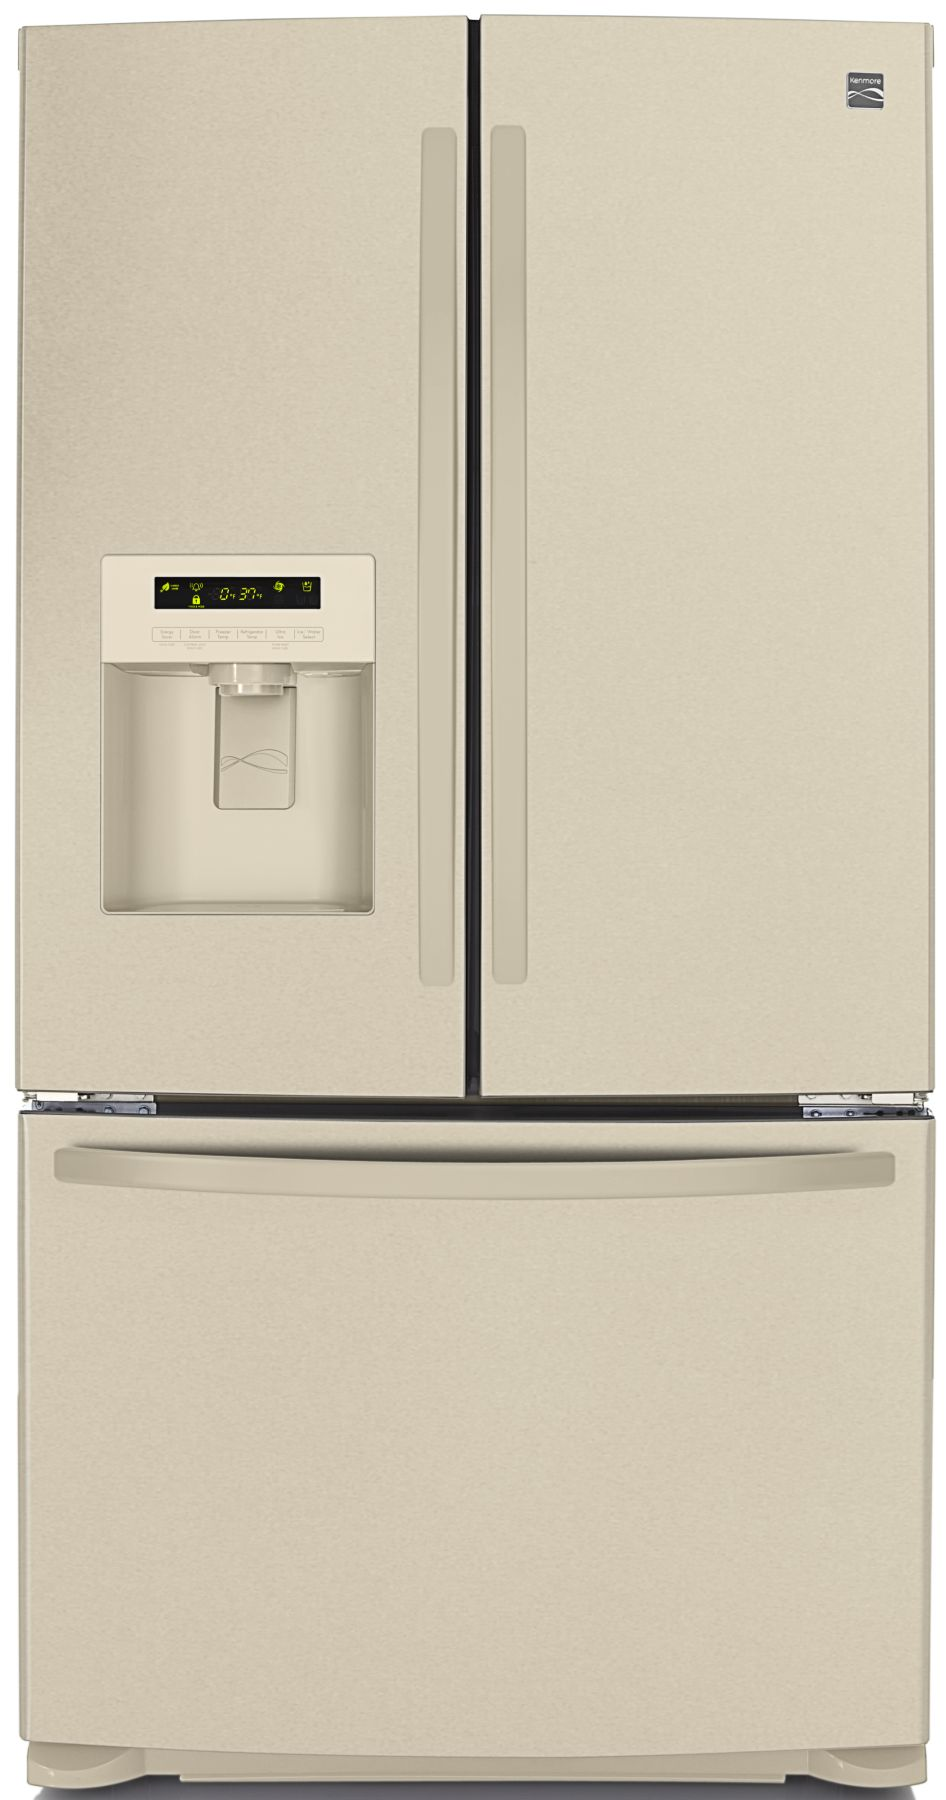 whirlpool gold refrigerator wiring diagram as well freezer. Black Bedroom Furniture Sets. Home Design Ideas